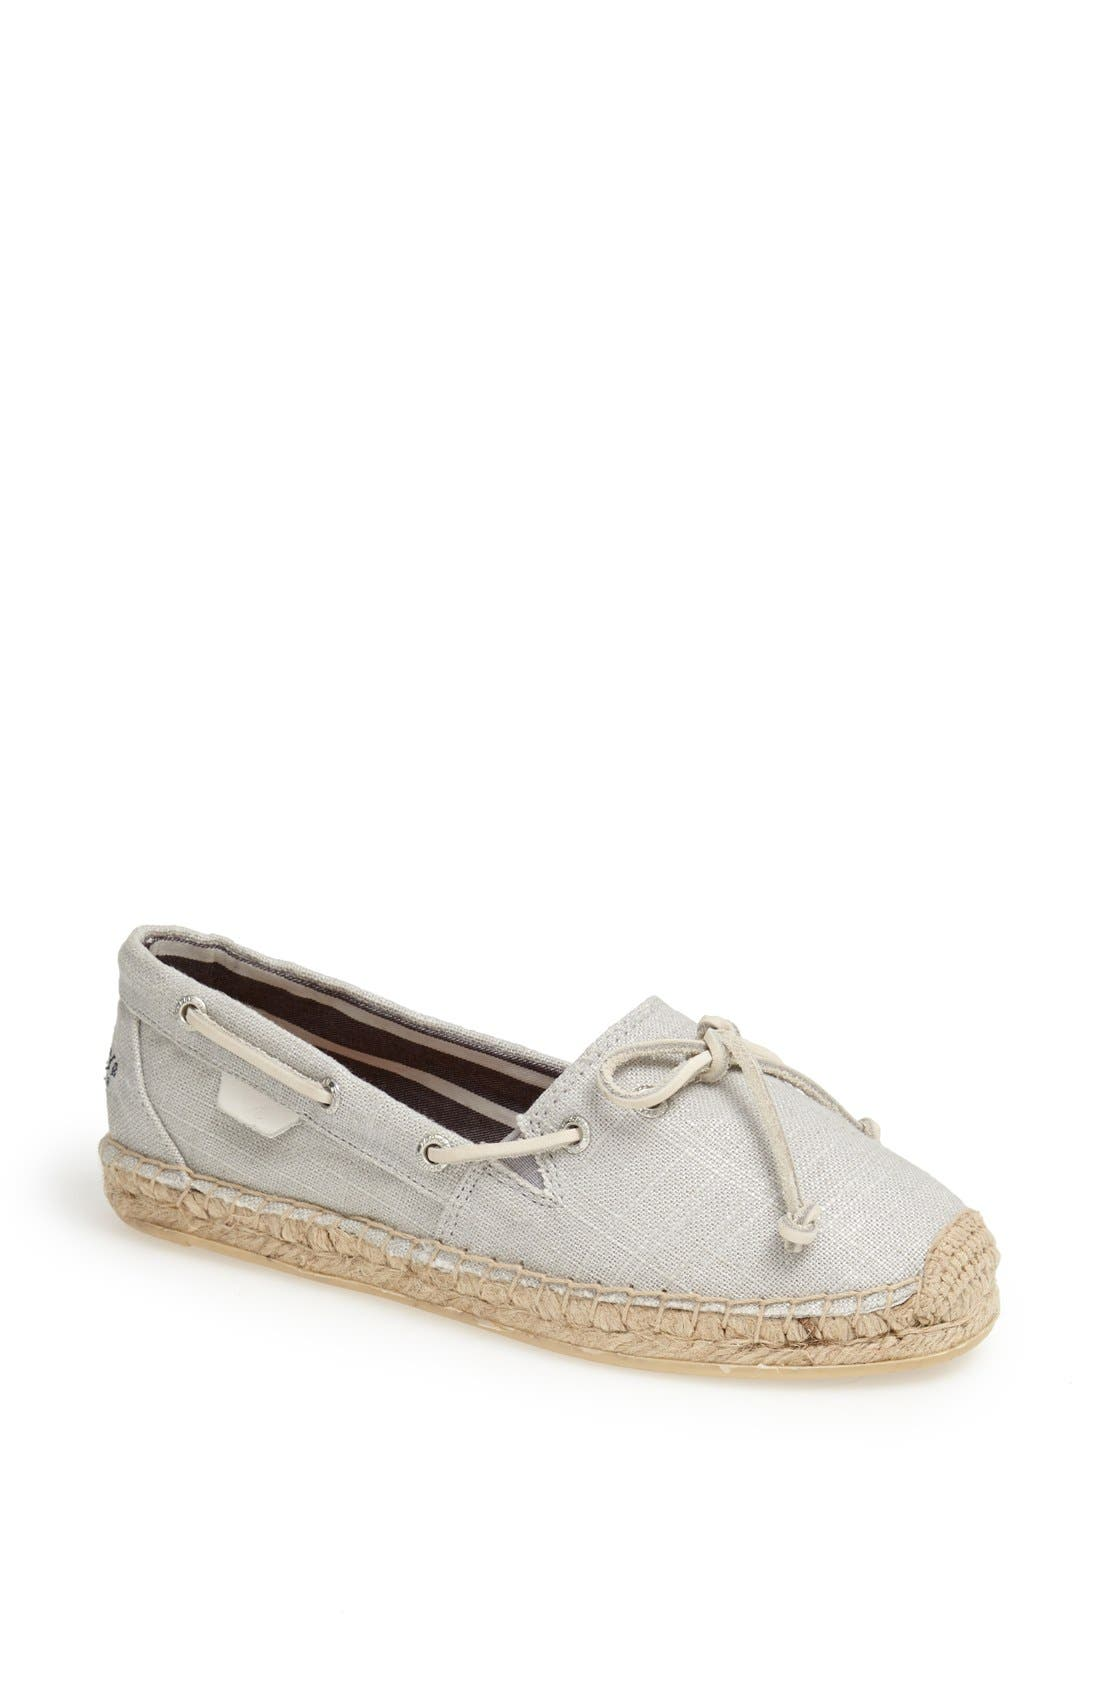 Main Image - Sperry 'Katama' Flat